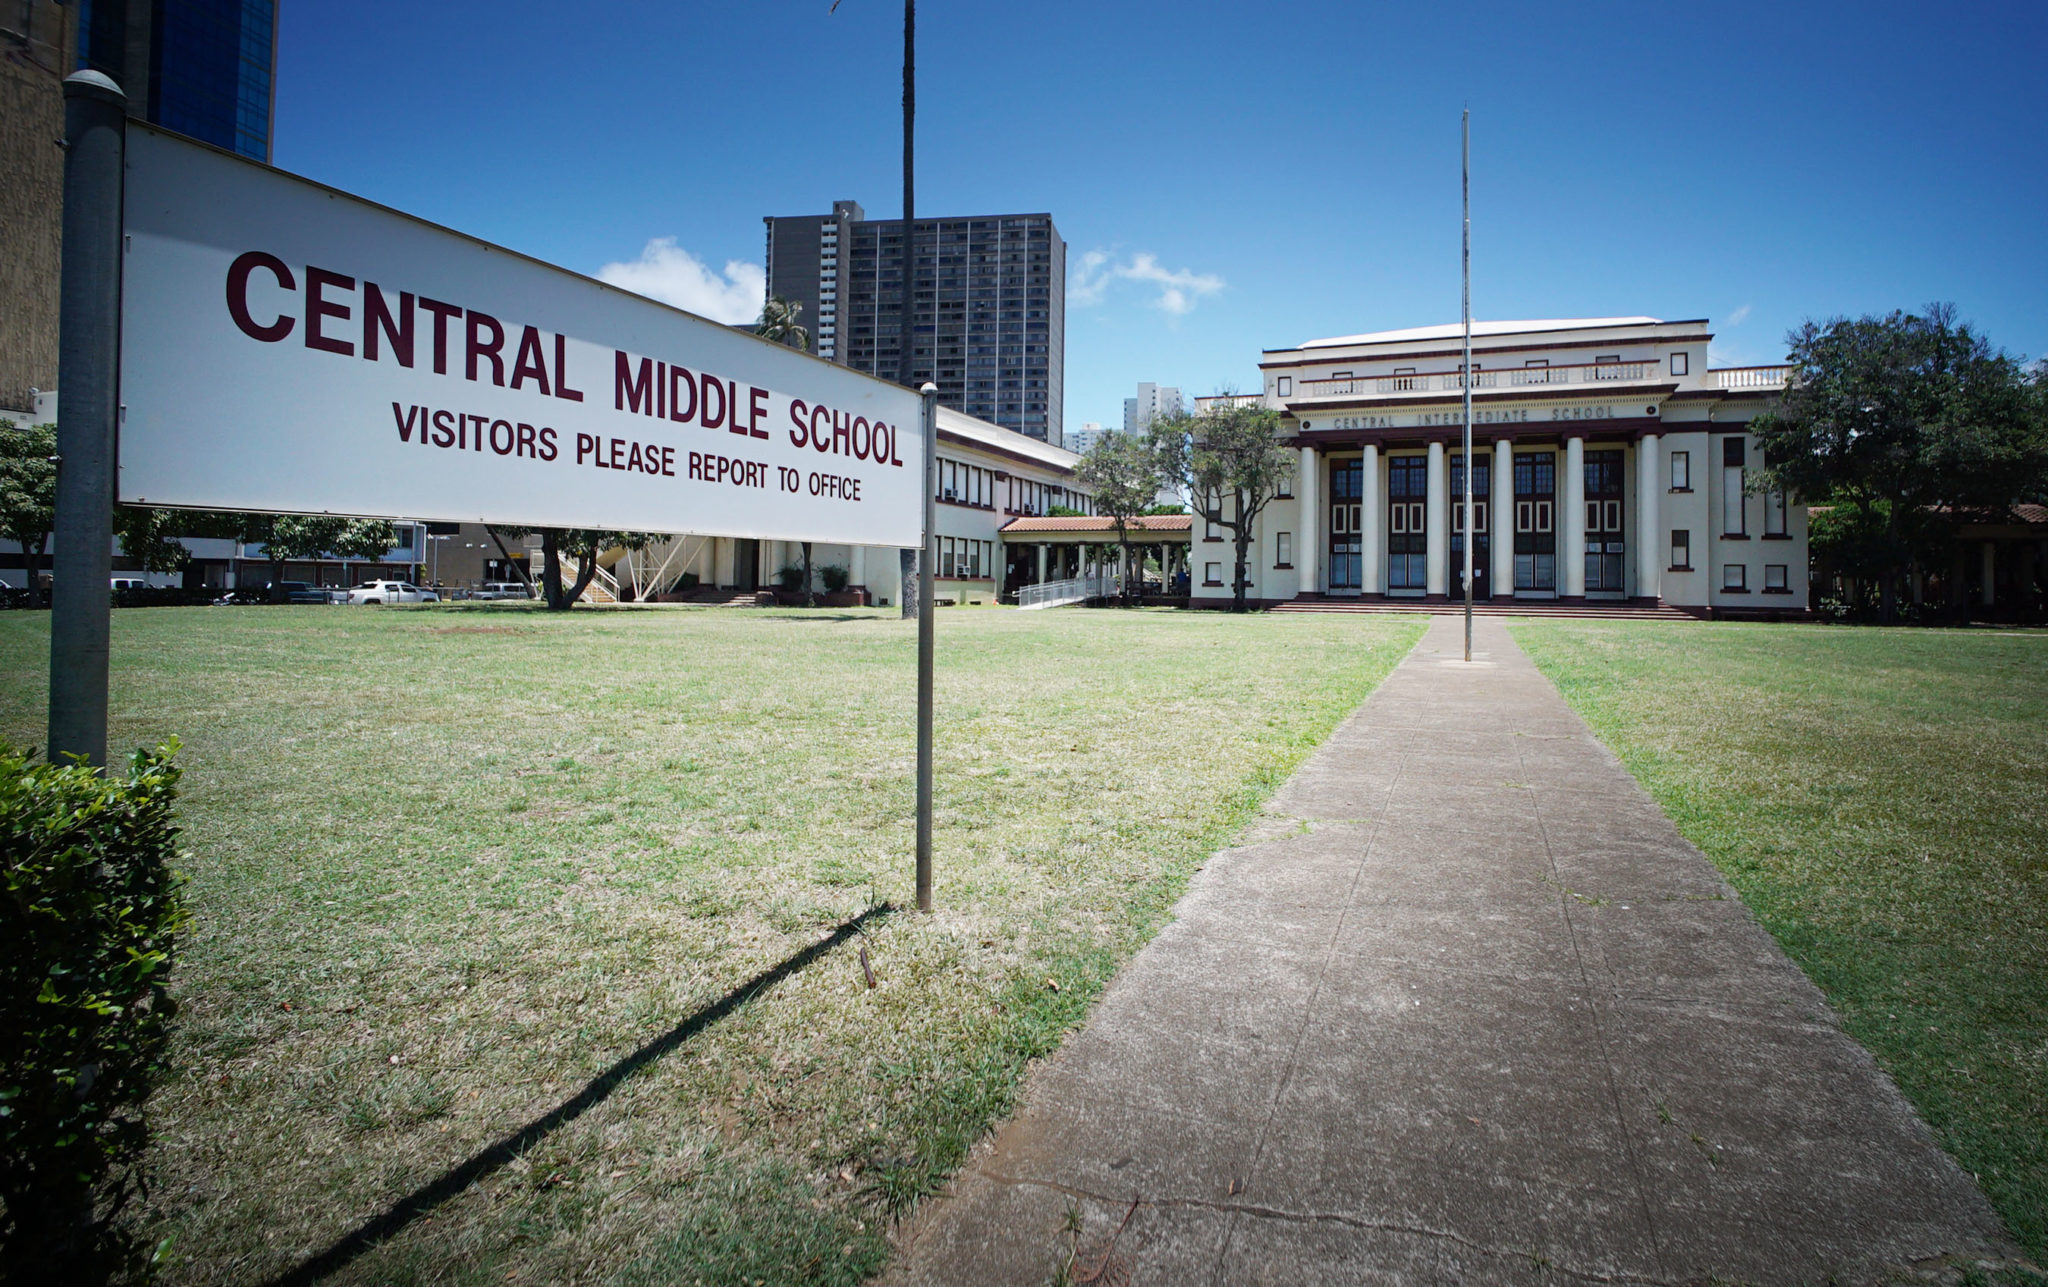 Central Middle School front lawn. Central Middle School is a historic school building in Honolulu, Hawaii, built on the grounds the former palace of Princess Ruth Keelikōlani of Hawaii.